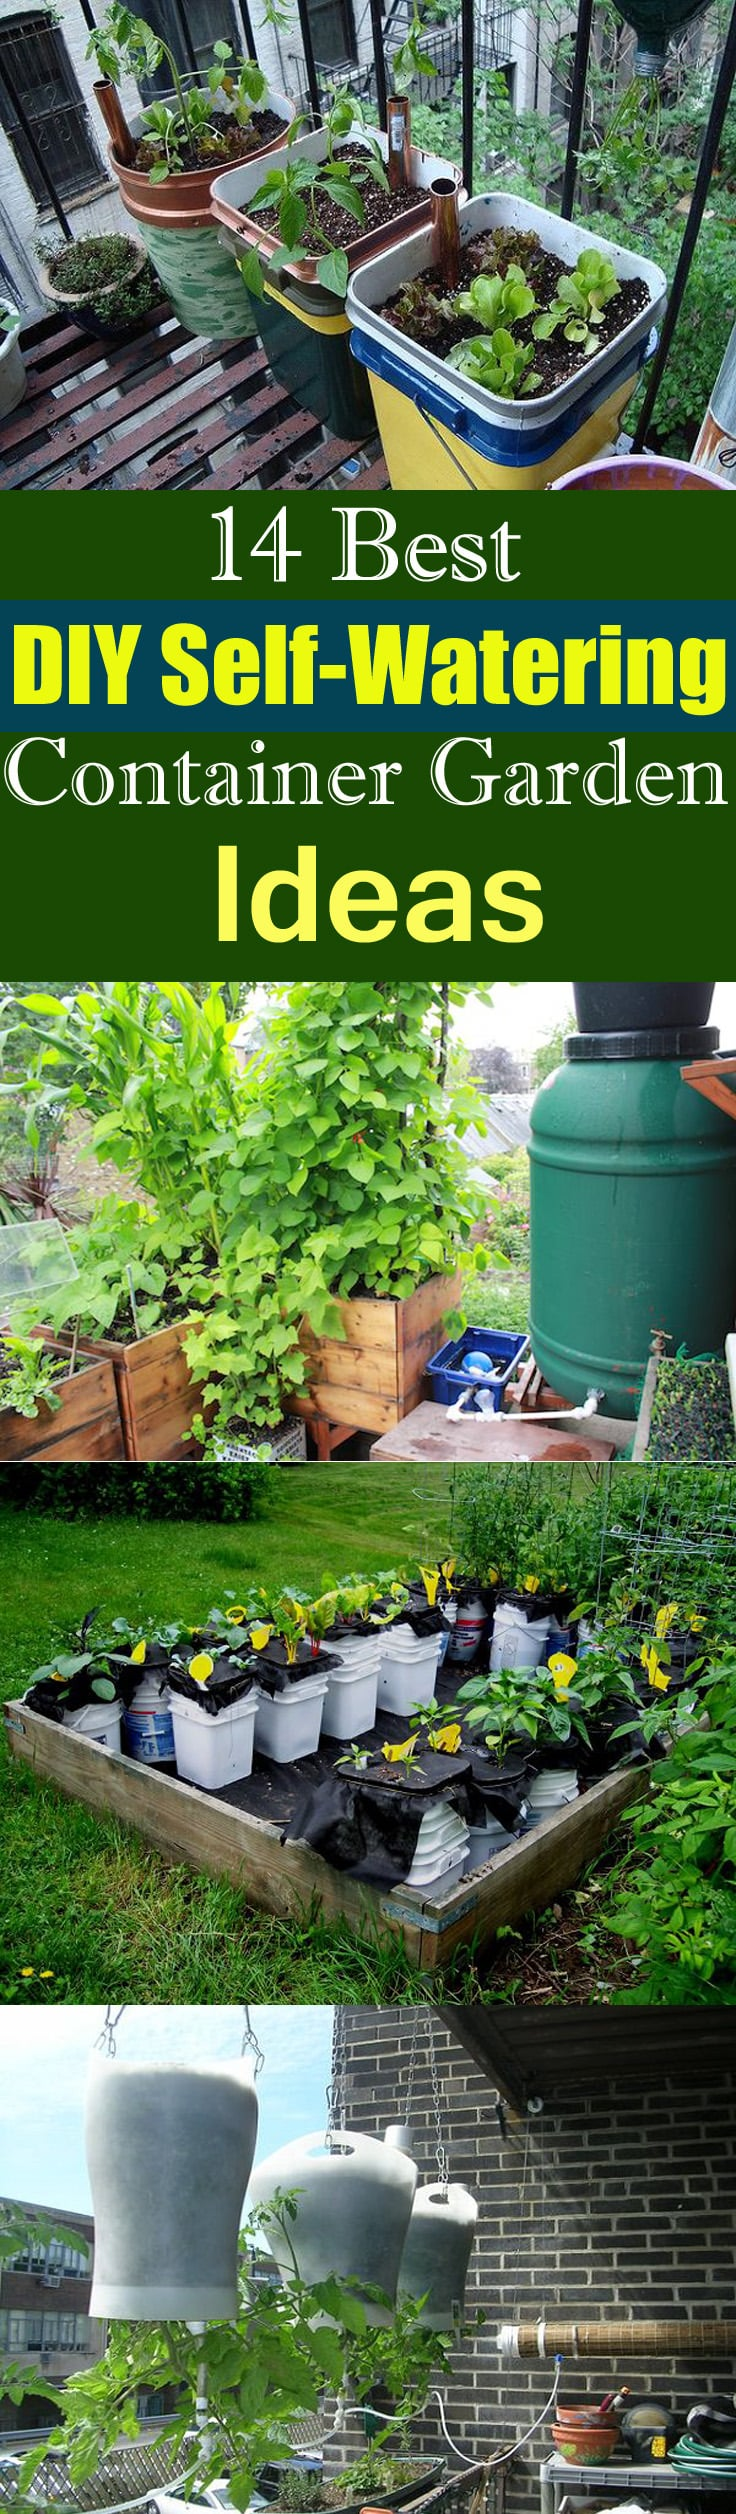 Make Self Watering Planters 14 Best Diy Self Watering Container Garden Ideas Balcony Garden Web